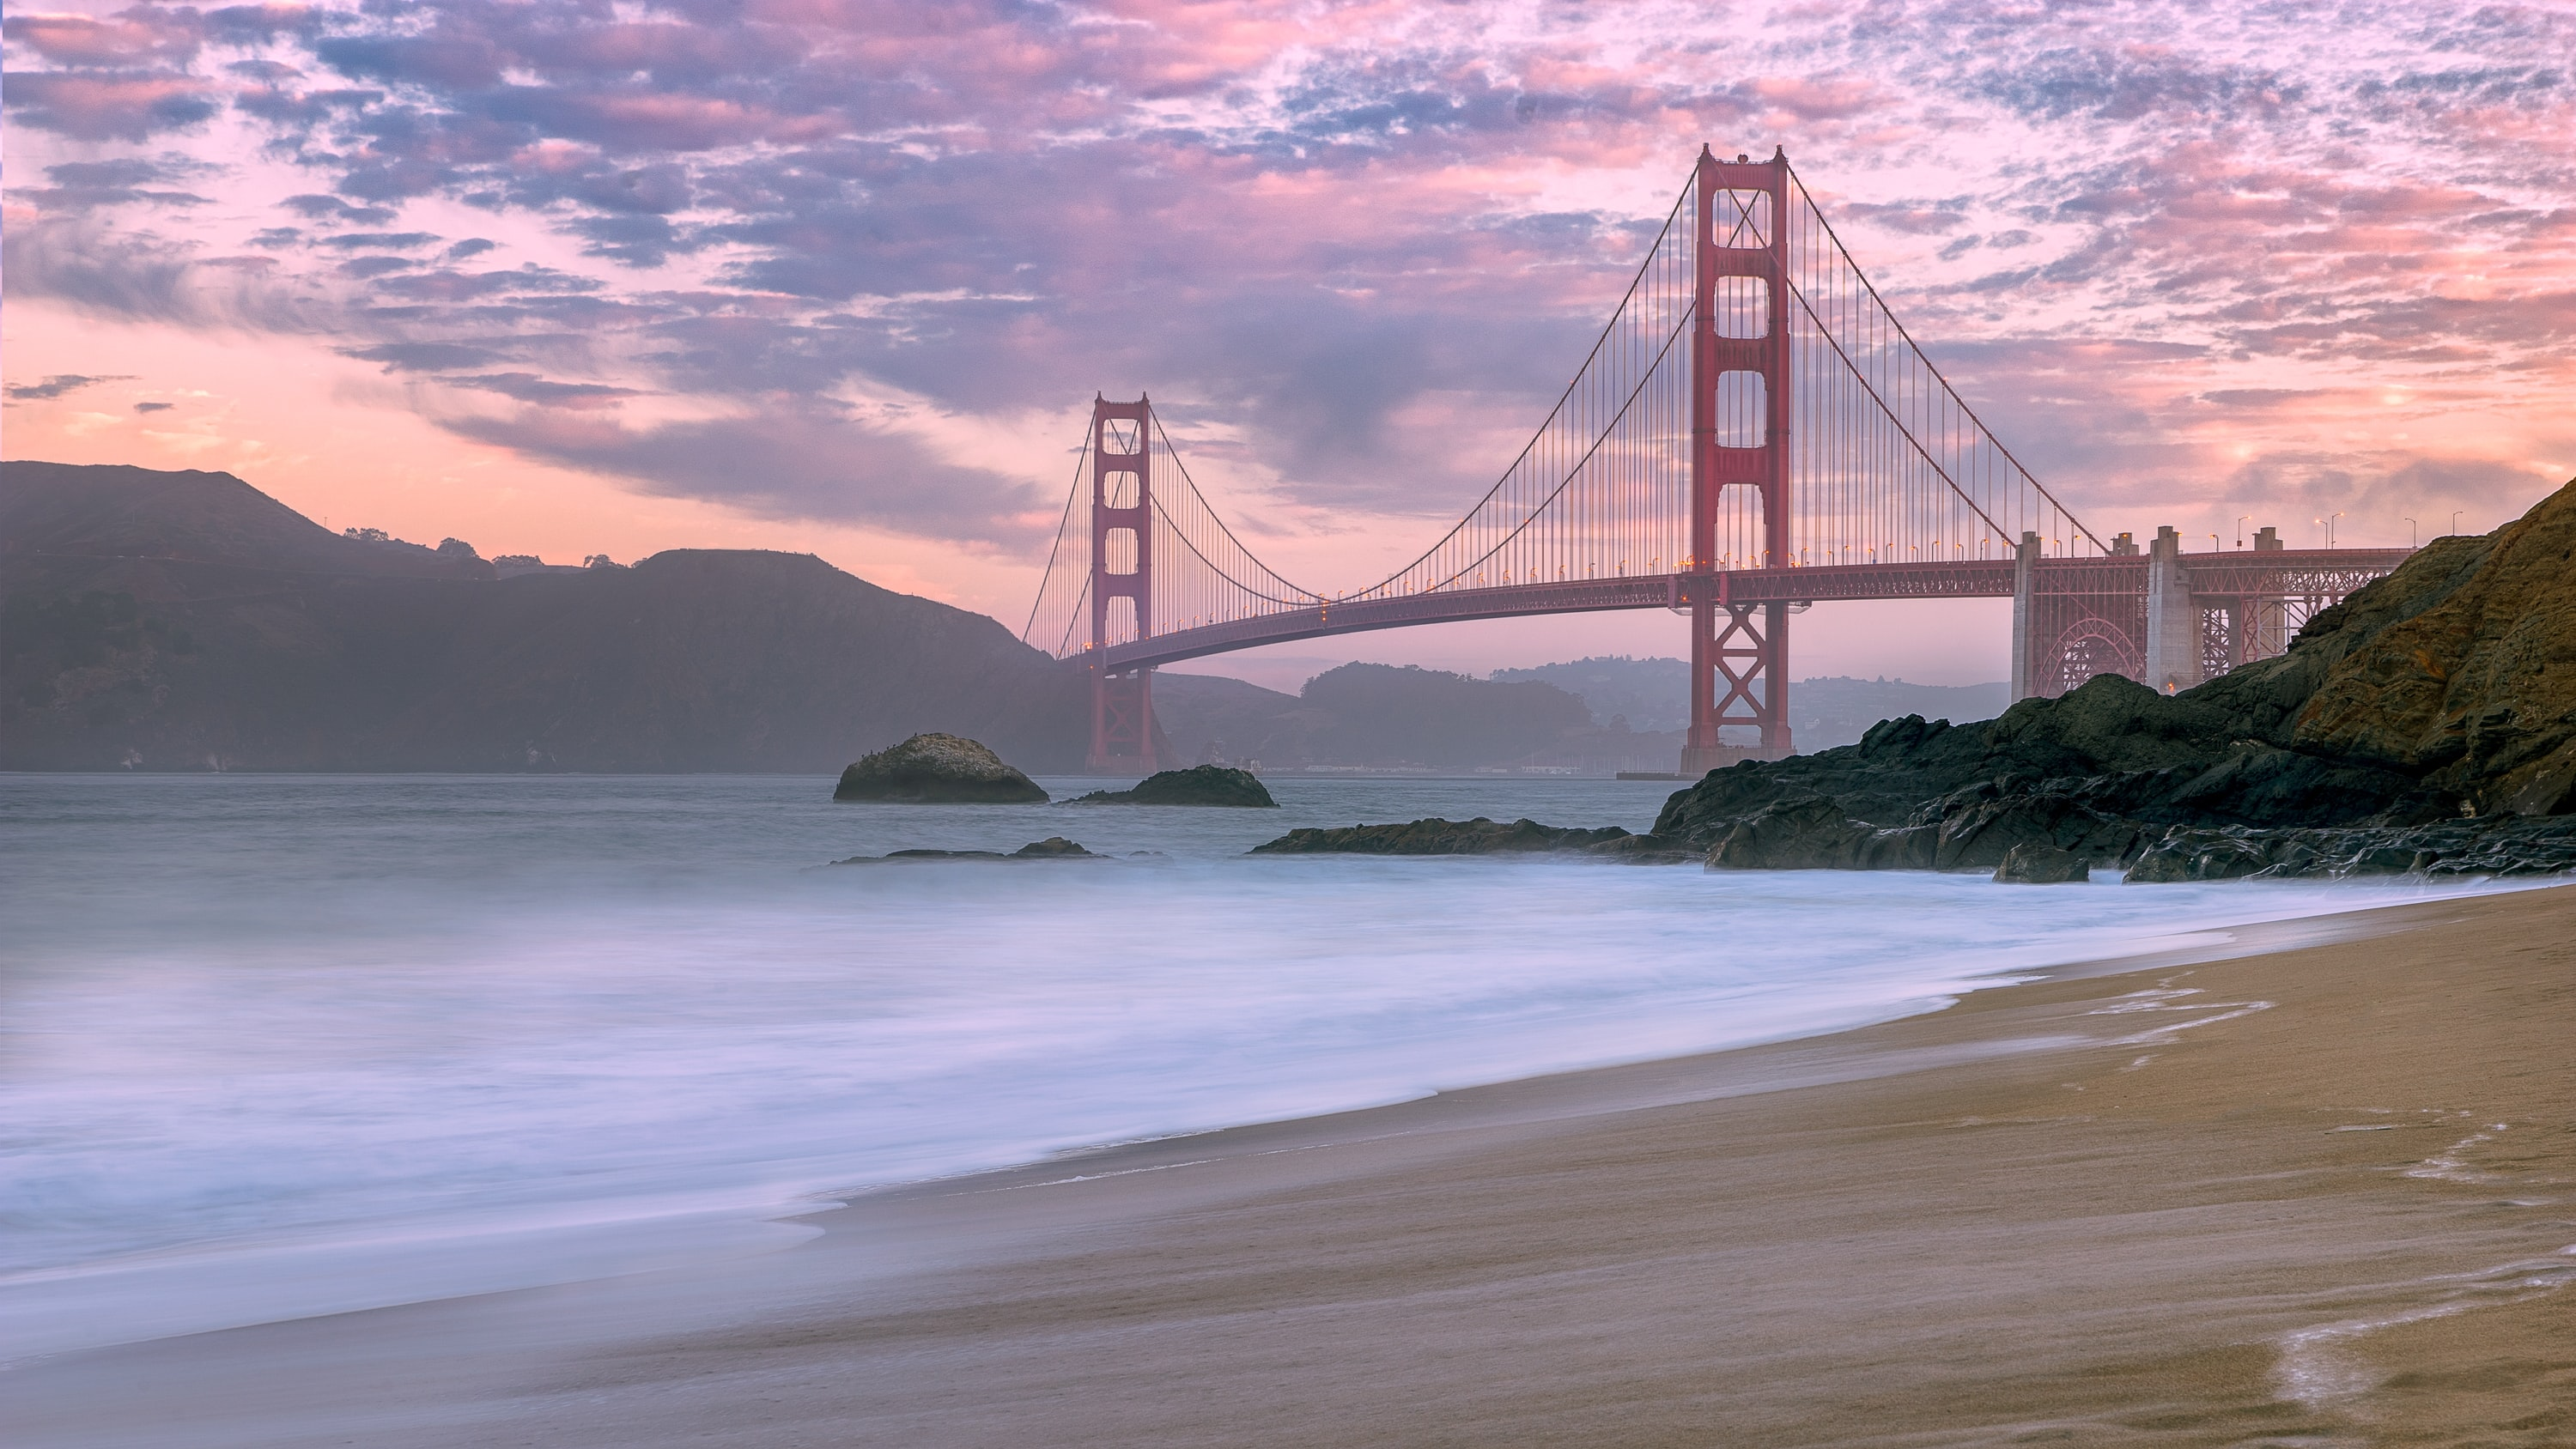 View of the Golden Gate bridge from the Baker Beach